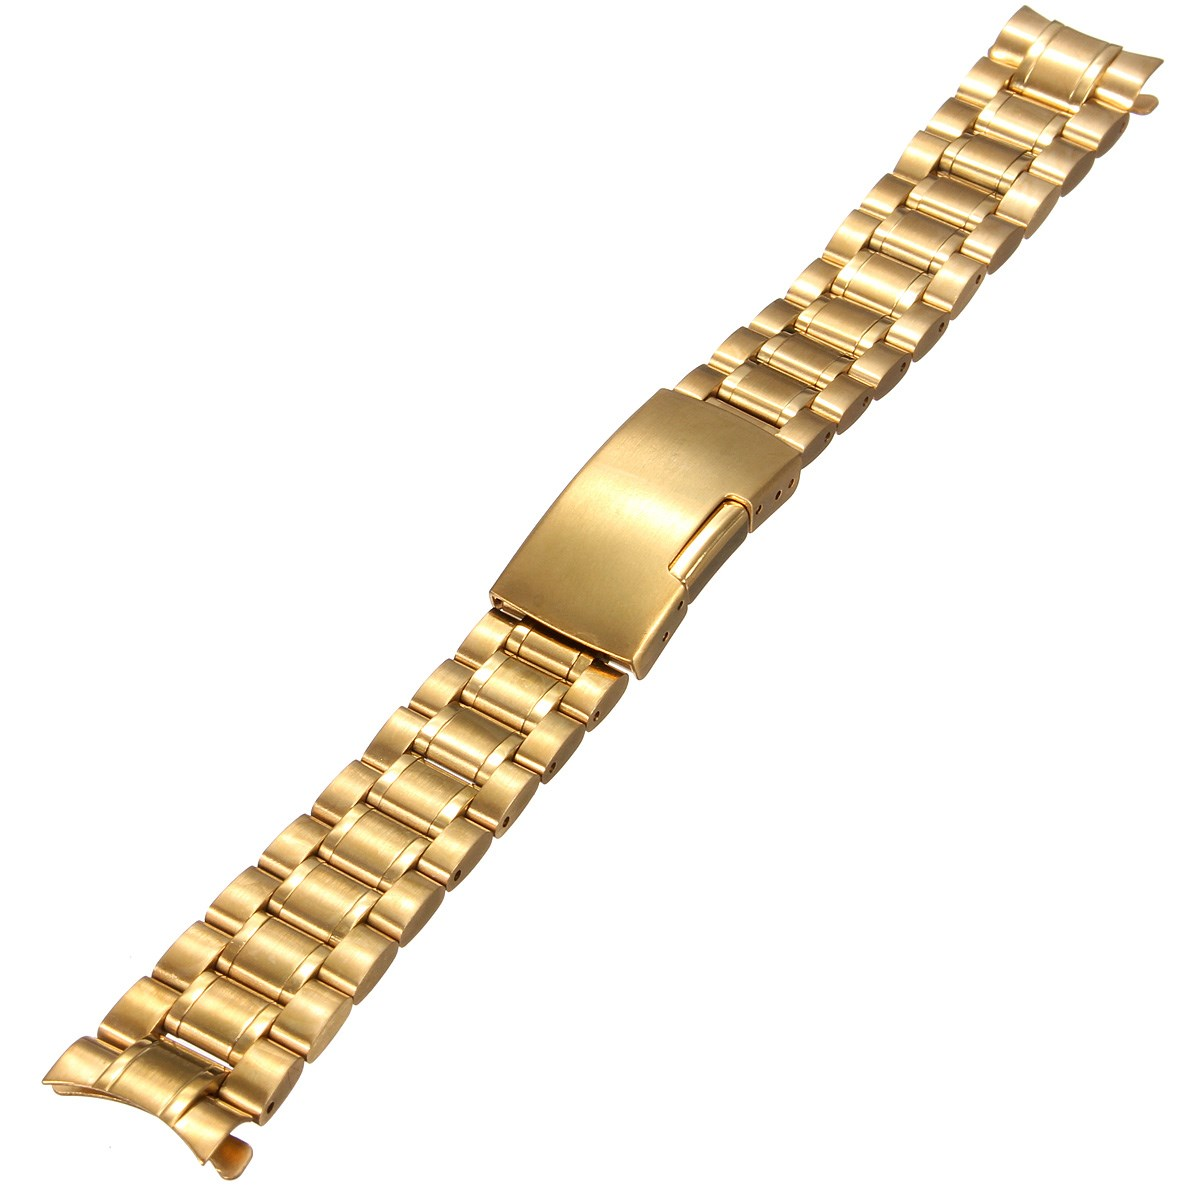 Hot 20mm Solid Stainless Steel Watch Bands Curved End Watches Strap Gold Watchband Bracelet Belt For Man Woman Wristband